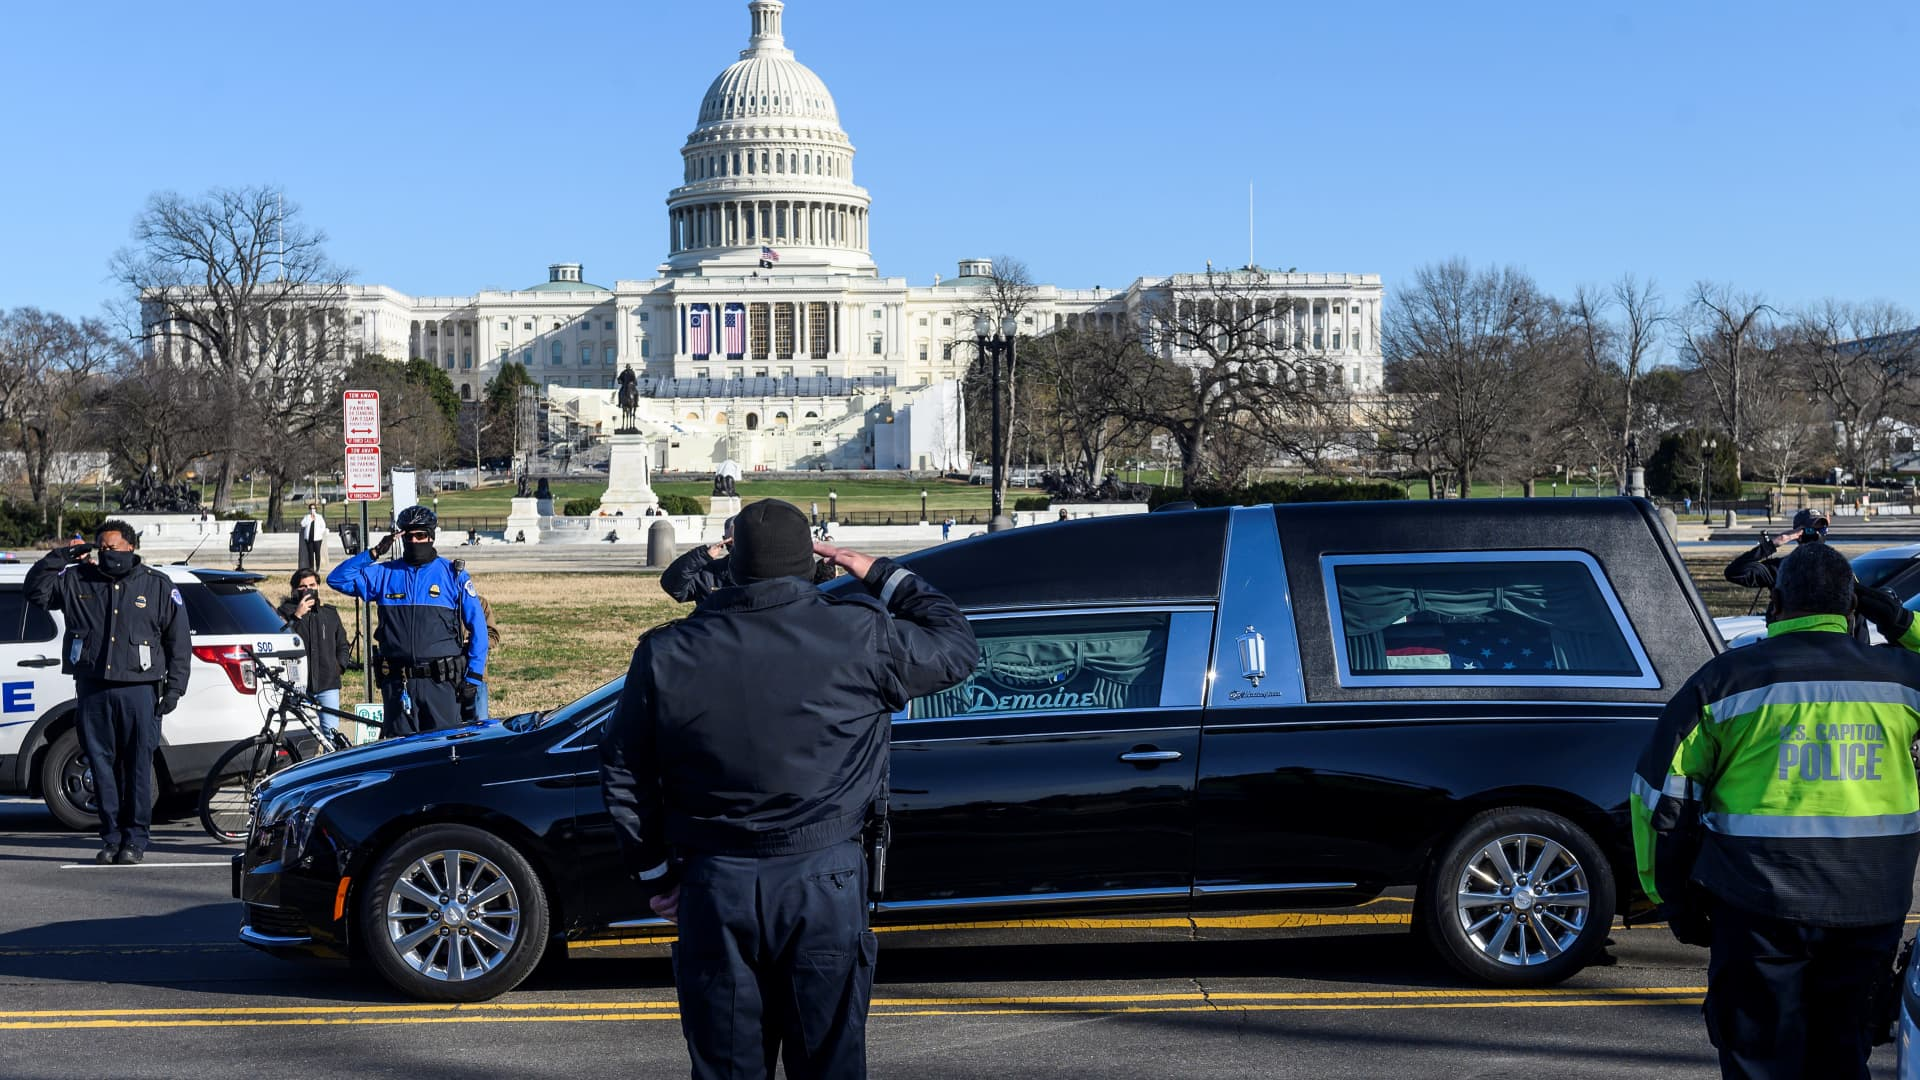 US Capital police stand at attention as the casket with fallen police officer, Brian Sicknick, passes during a funeral procession in Washington, DC on January 10, 2021.